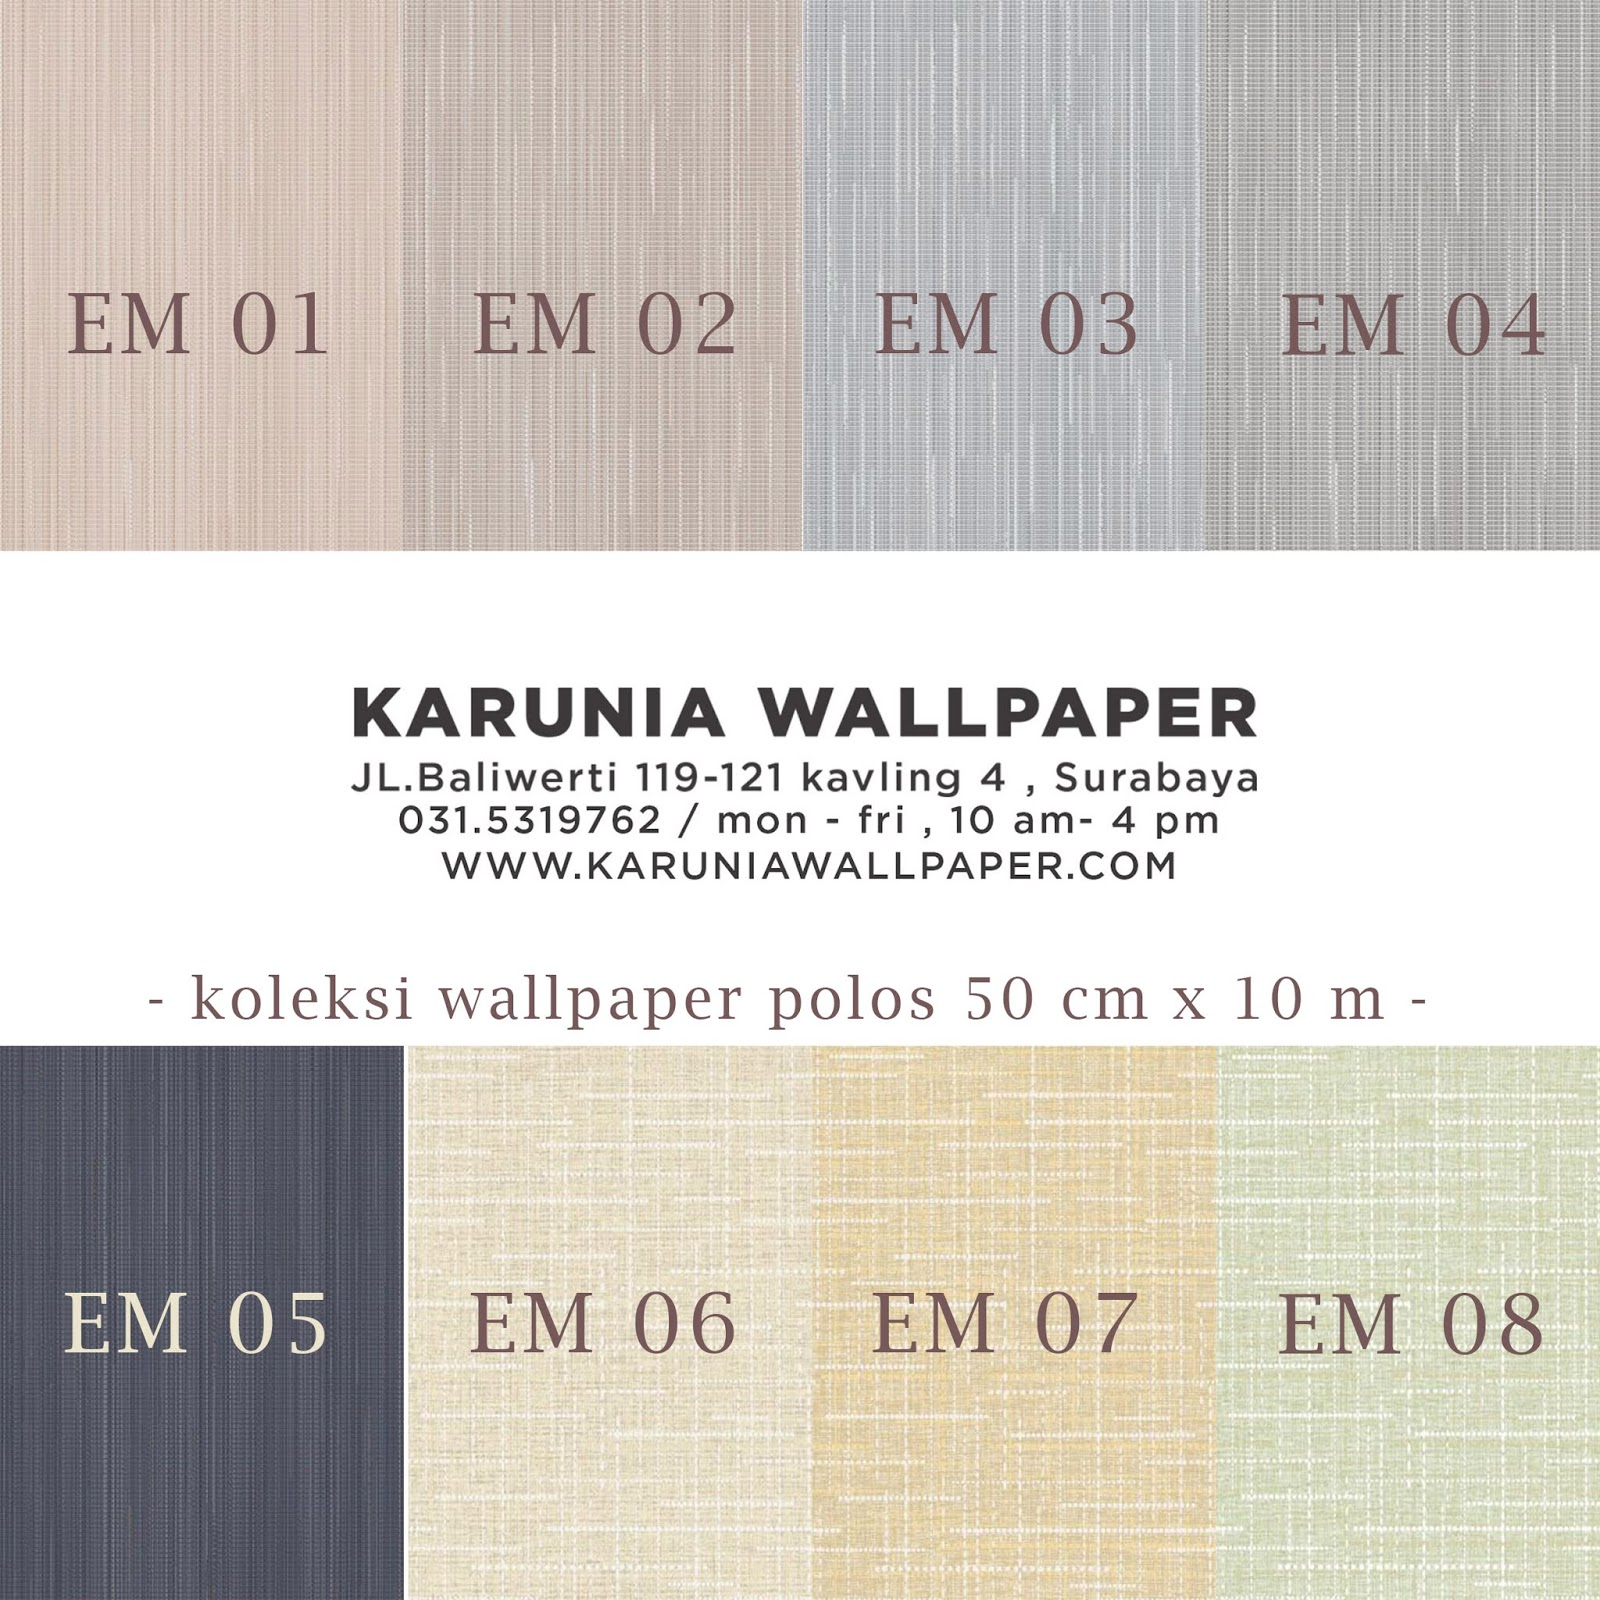 jual wallpaper simple polos karuniawallpaper surabaya toko wallpaper grosir murah